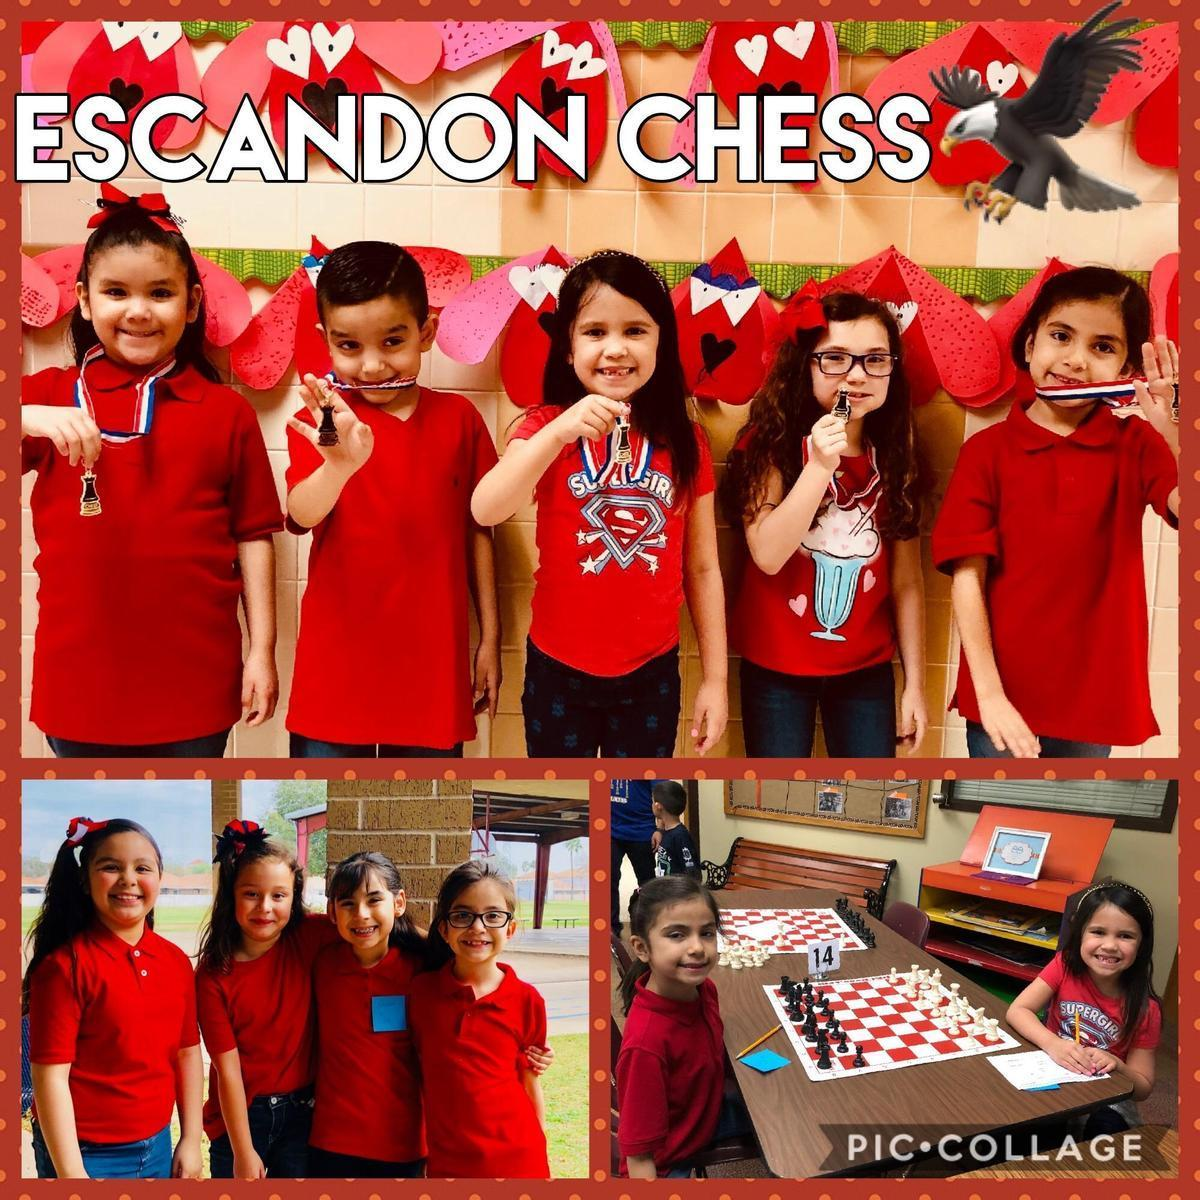 Escandon Chess Team